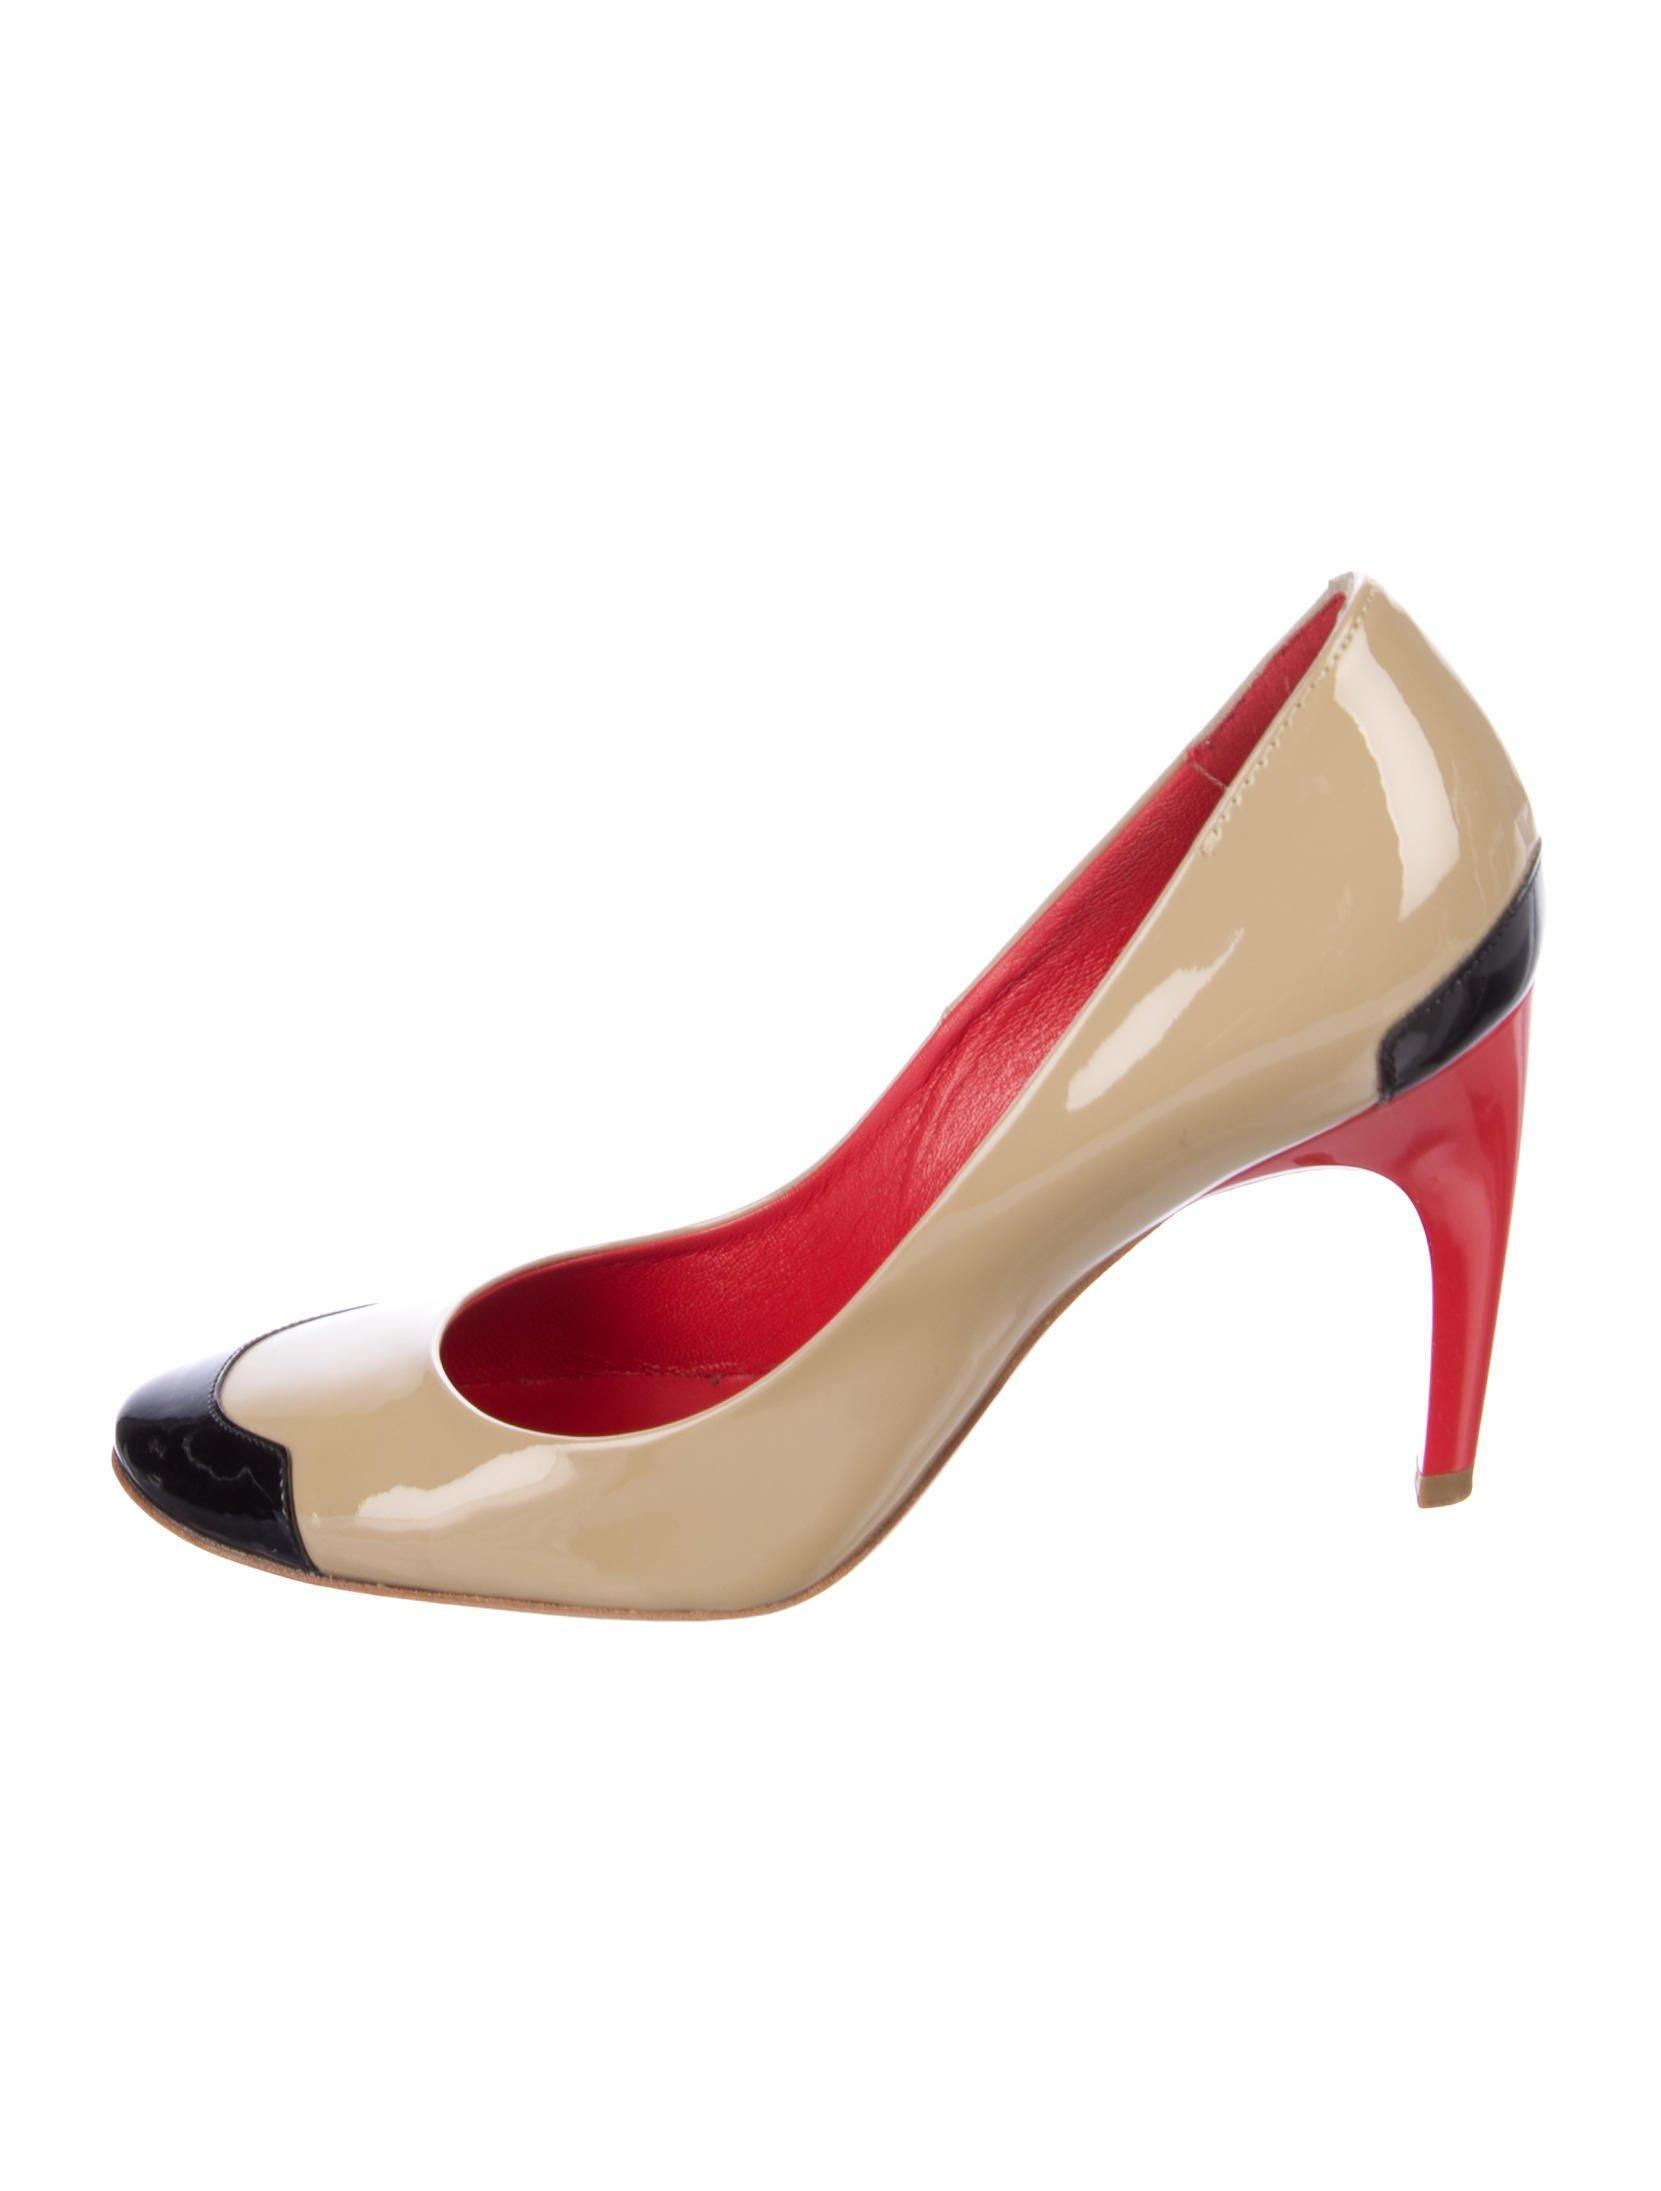 Roger Vivier Buckle-Accented Round-Toe Pumps clearance VC0YQHjLms